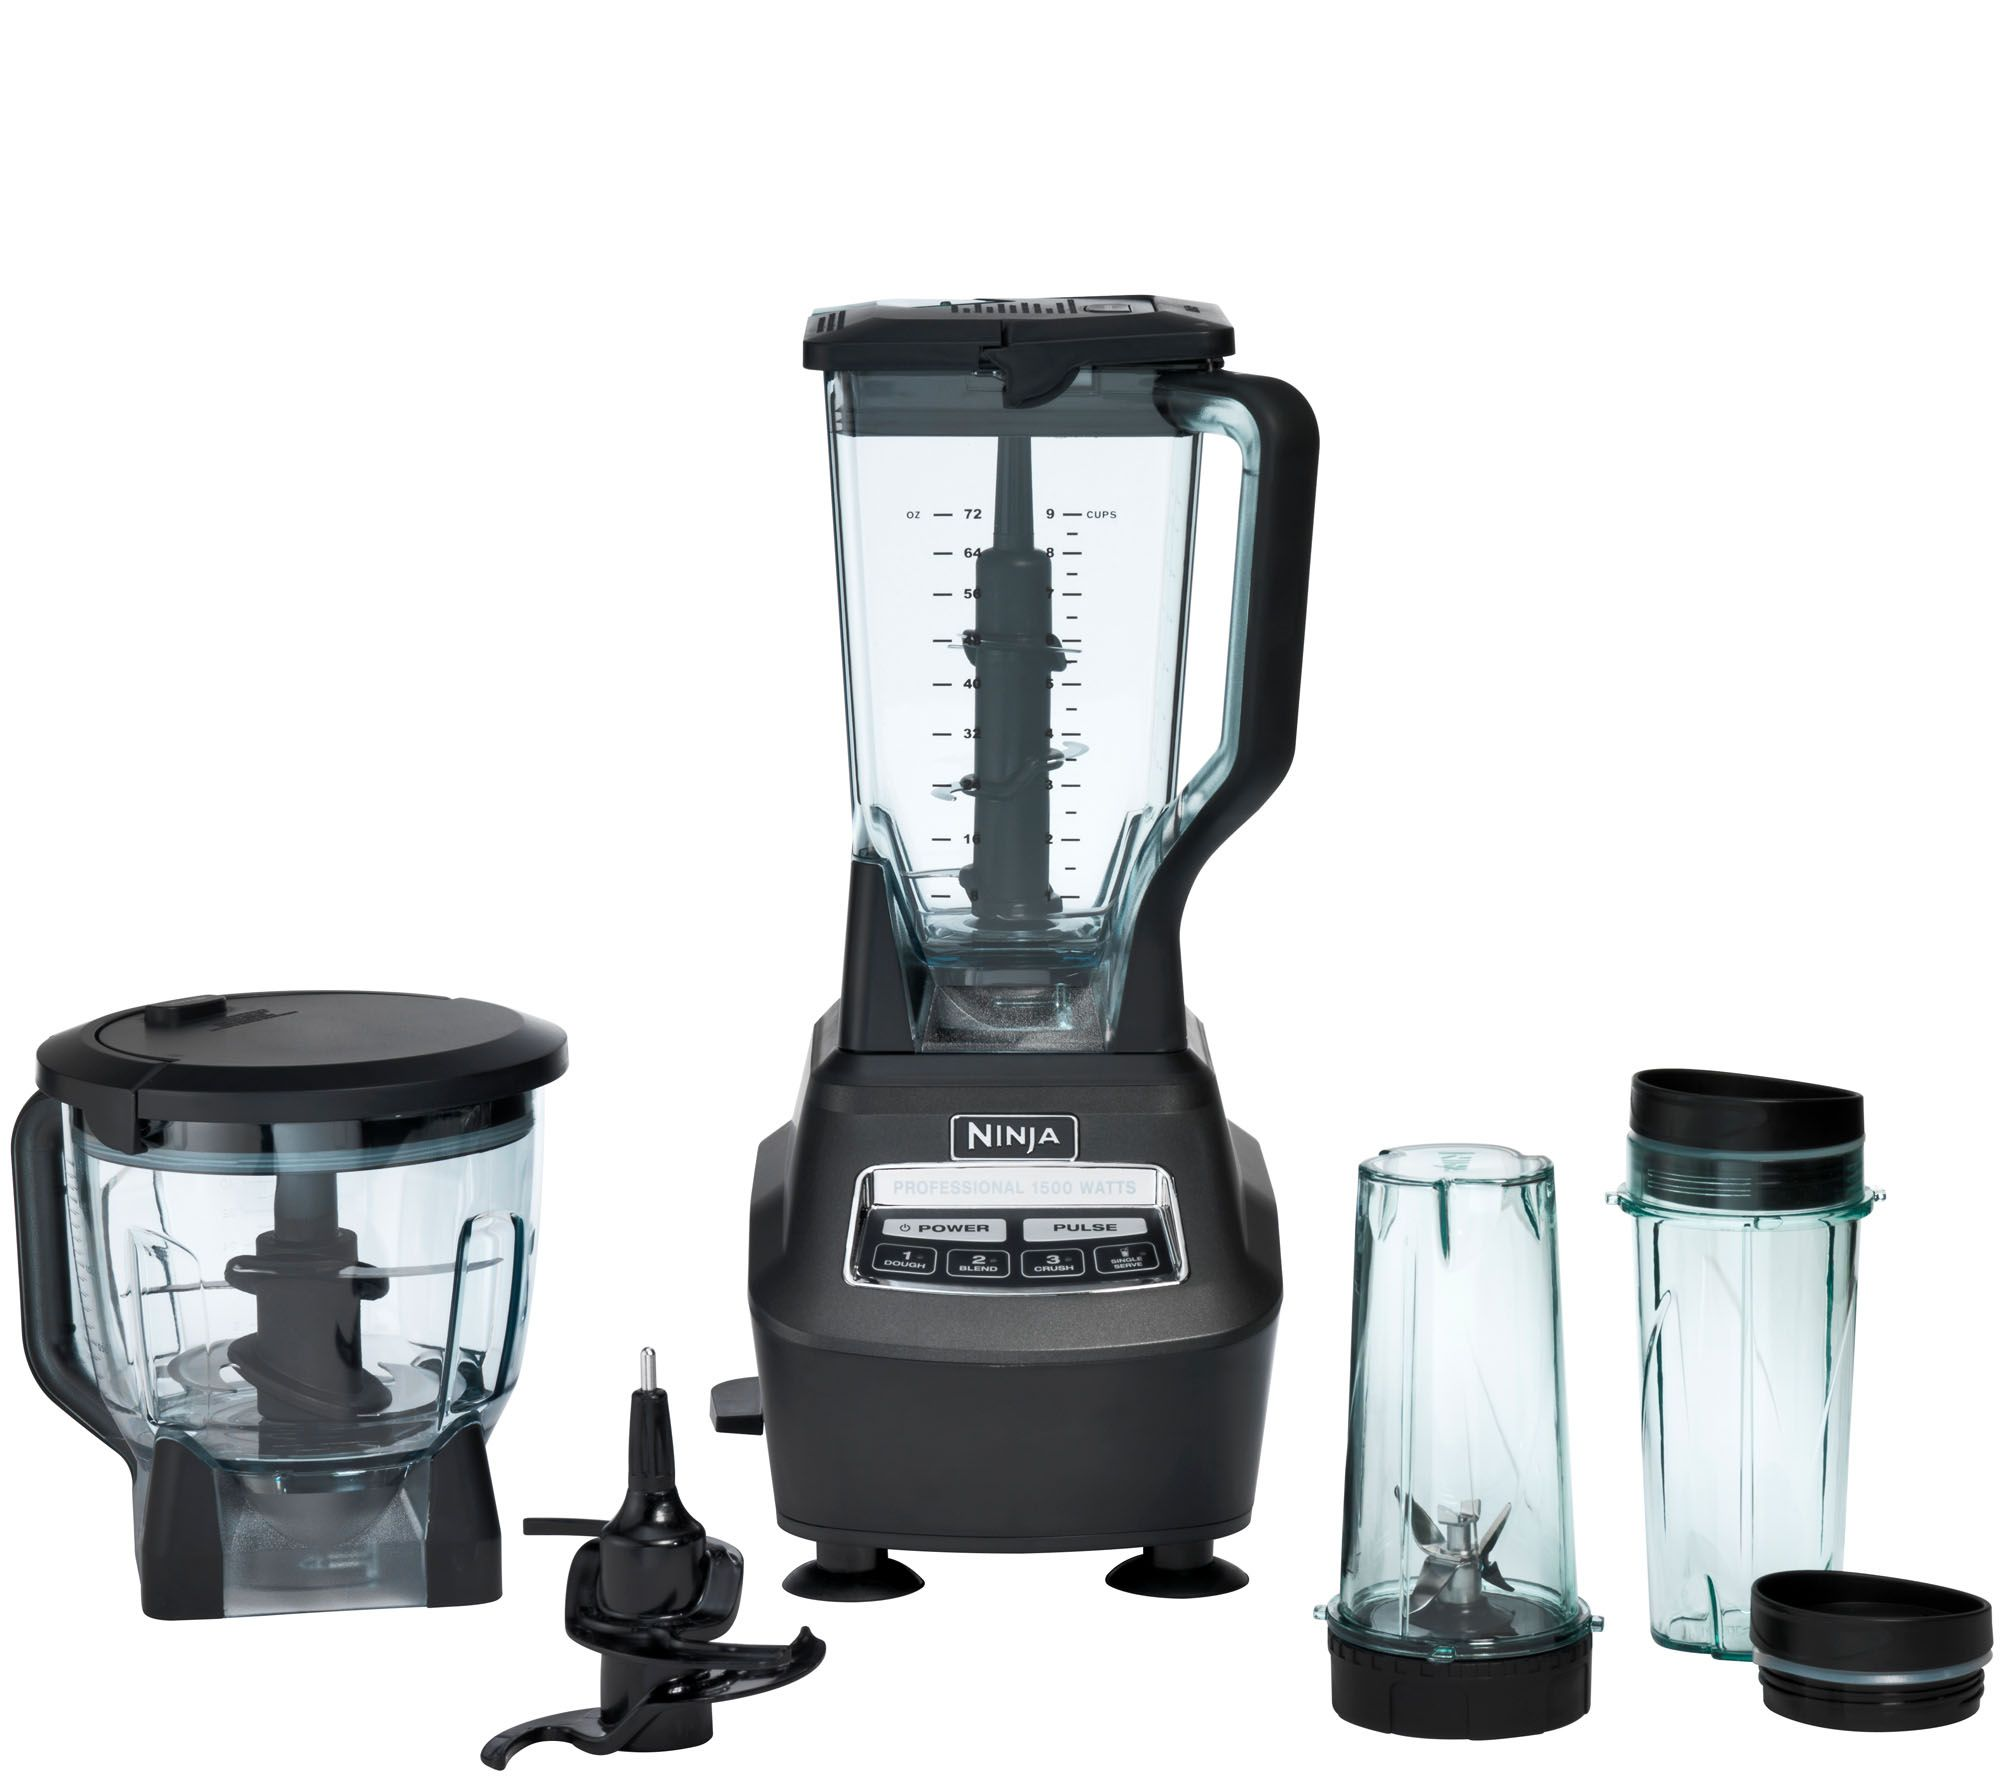 ninja mega kitchen system table top blender page 1 qvc